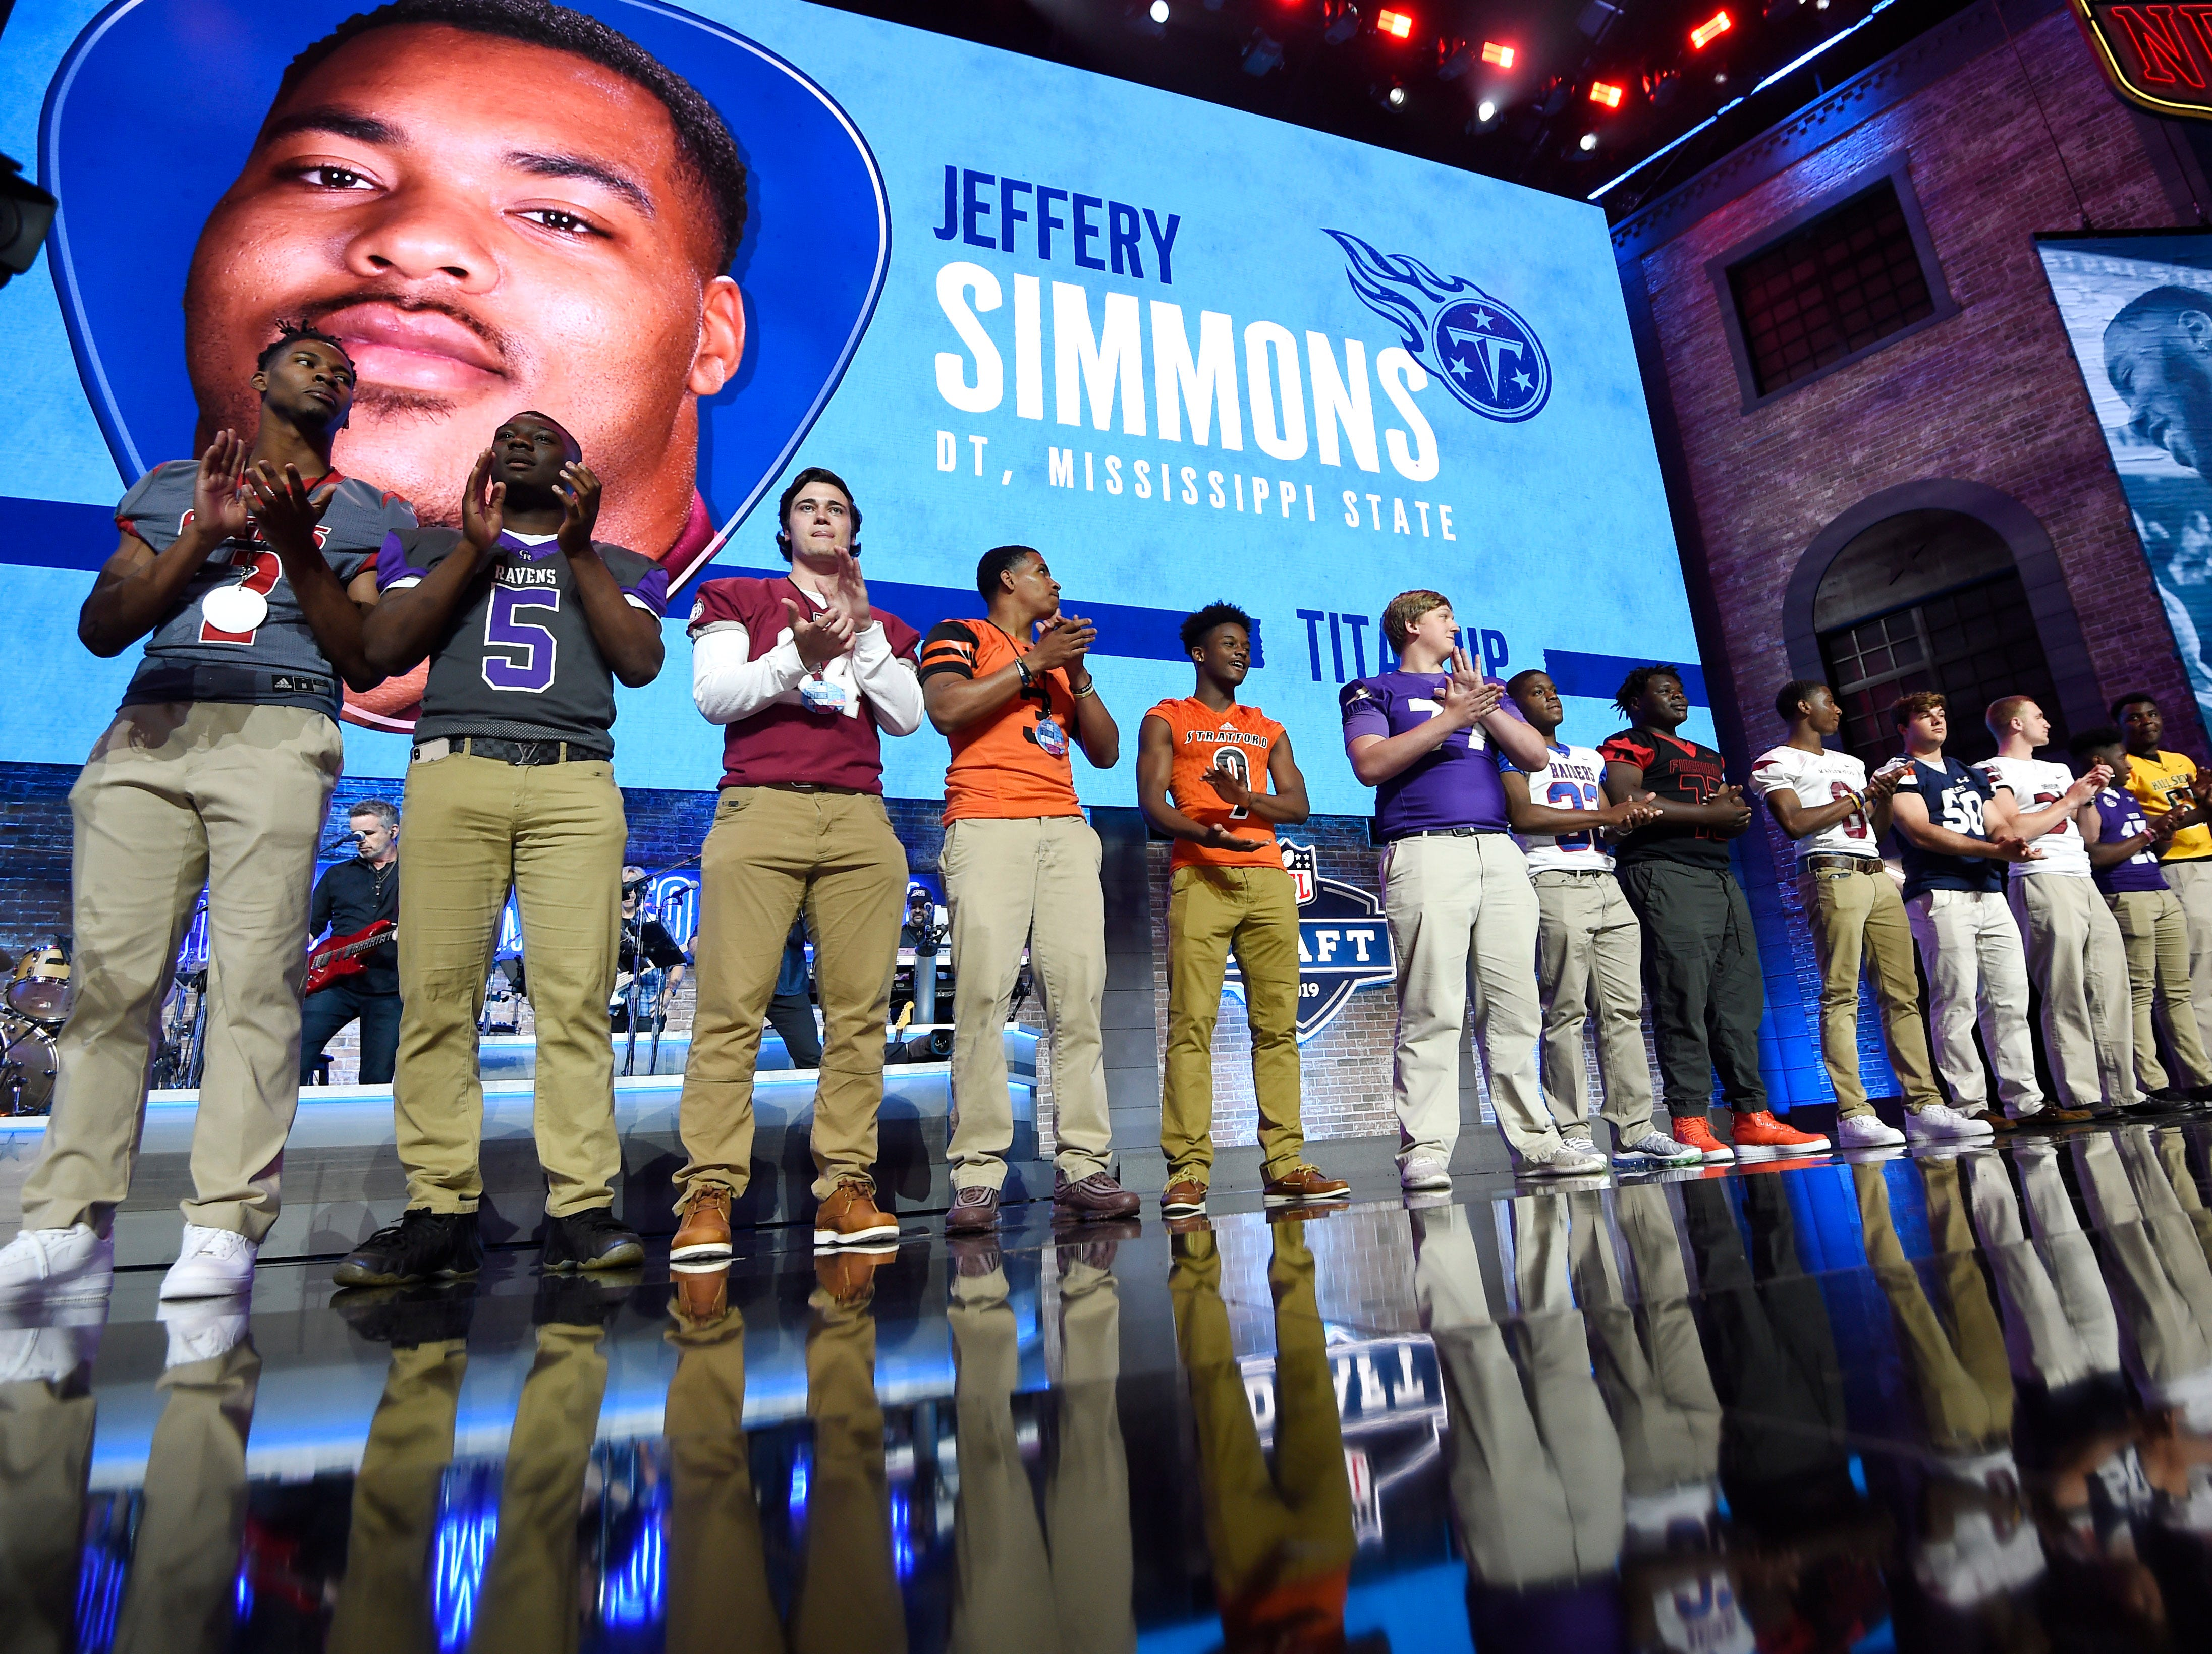 TSSAA athletes applaud the Titans' pick of Mississippi State's Jeffery Simmons during the first round of the NFL Draft Thursday, April 25, 2019, in Nashville, Tenn.